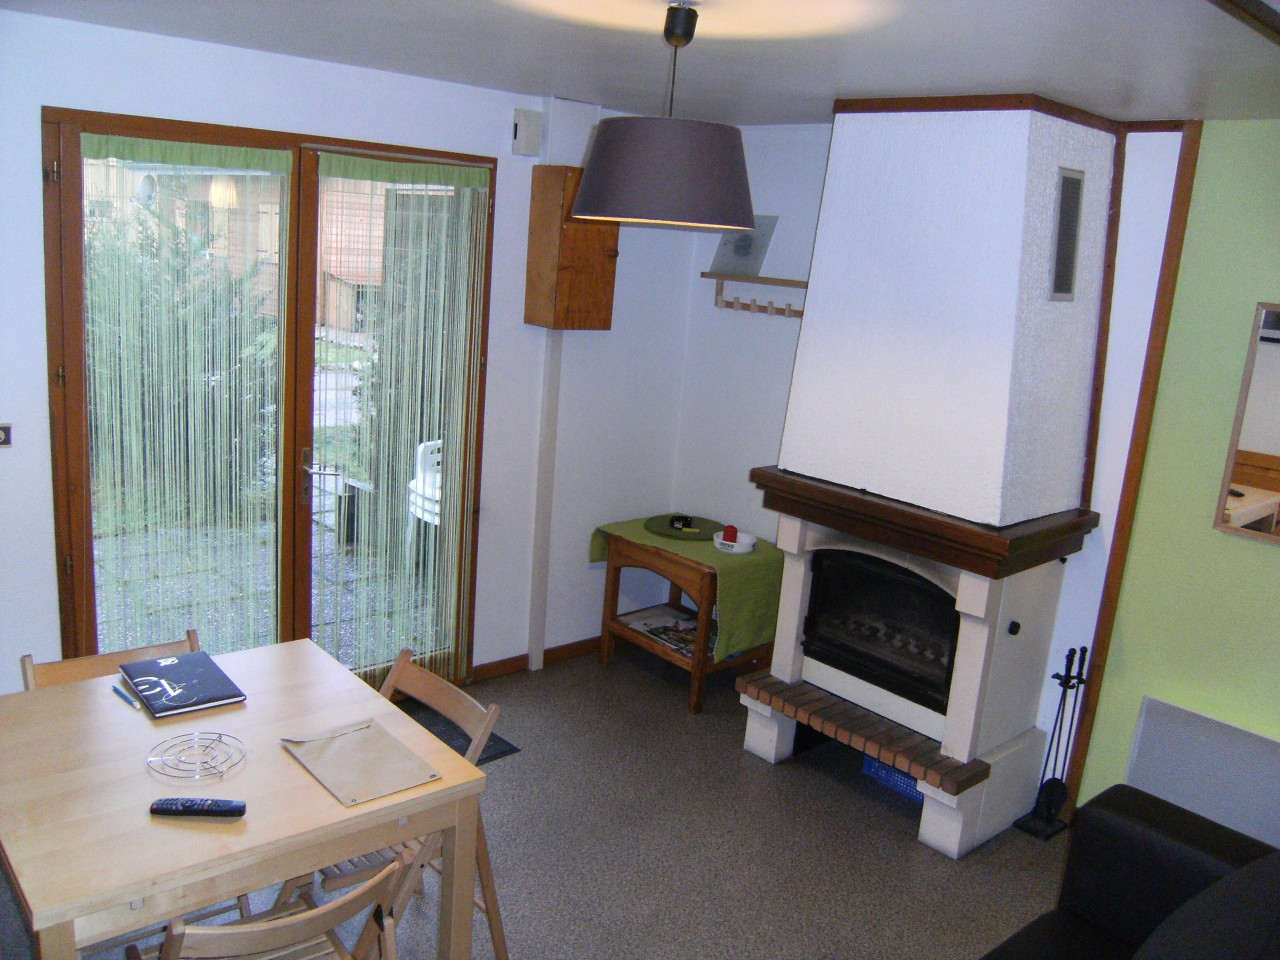 Agence immobili re g rardmer annonce appartements n 2257 for Agence immobiliere gerardmer